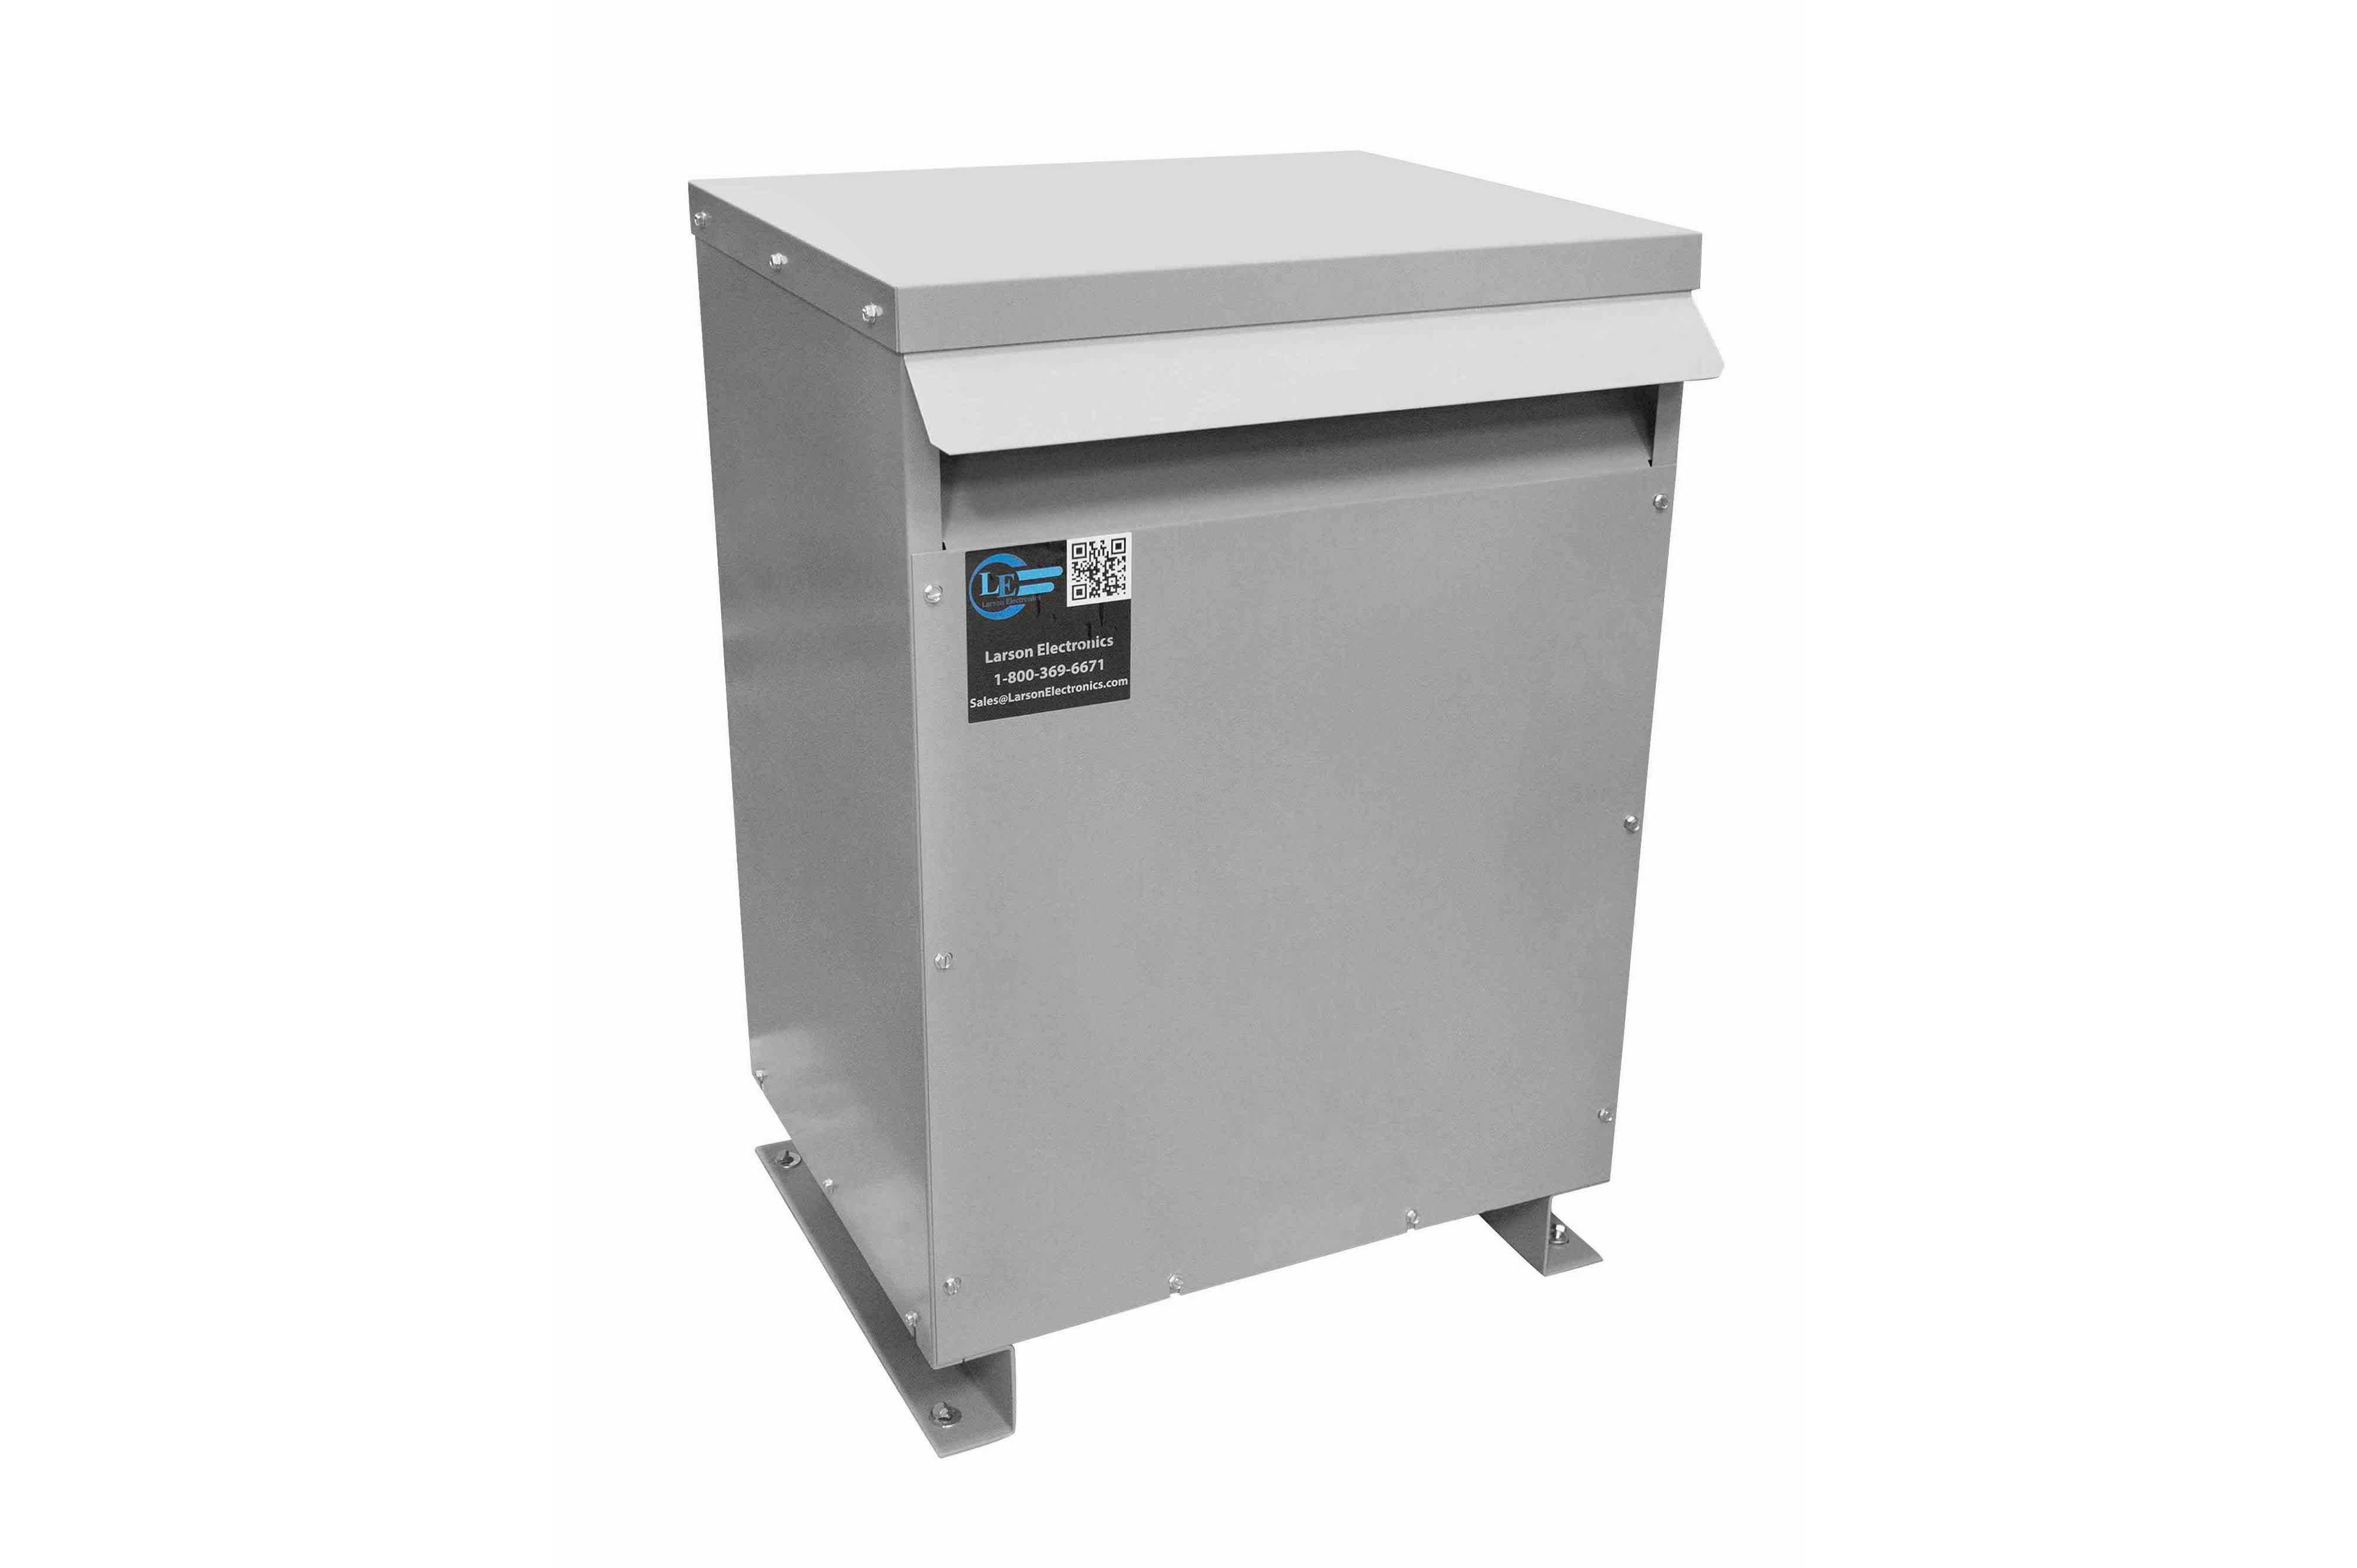 237.5 kVA 3PH Isolation Transformer, 460V Wye Primary, 600Y/347 Wye-N Secondary, N3R, Ventilated, 60 Hz